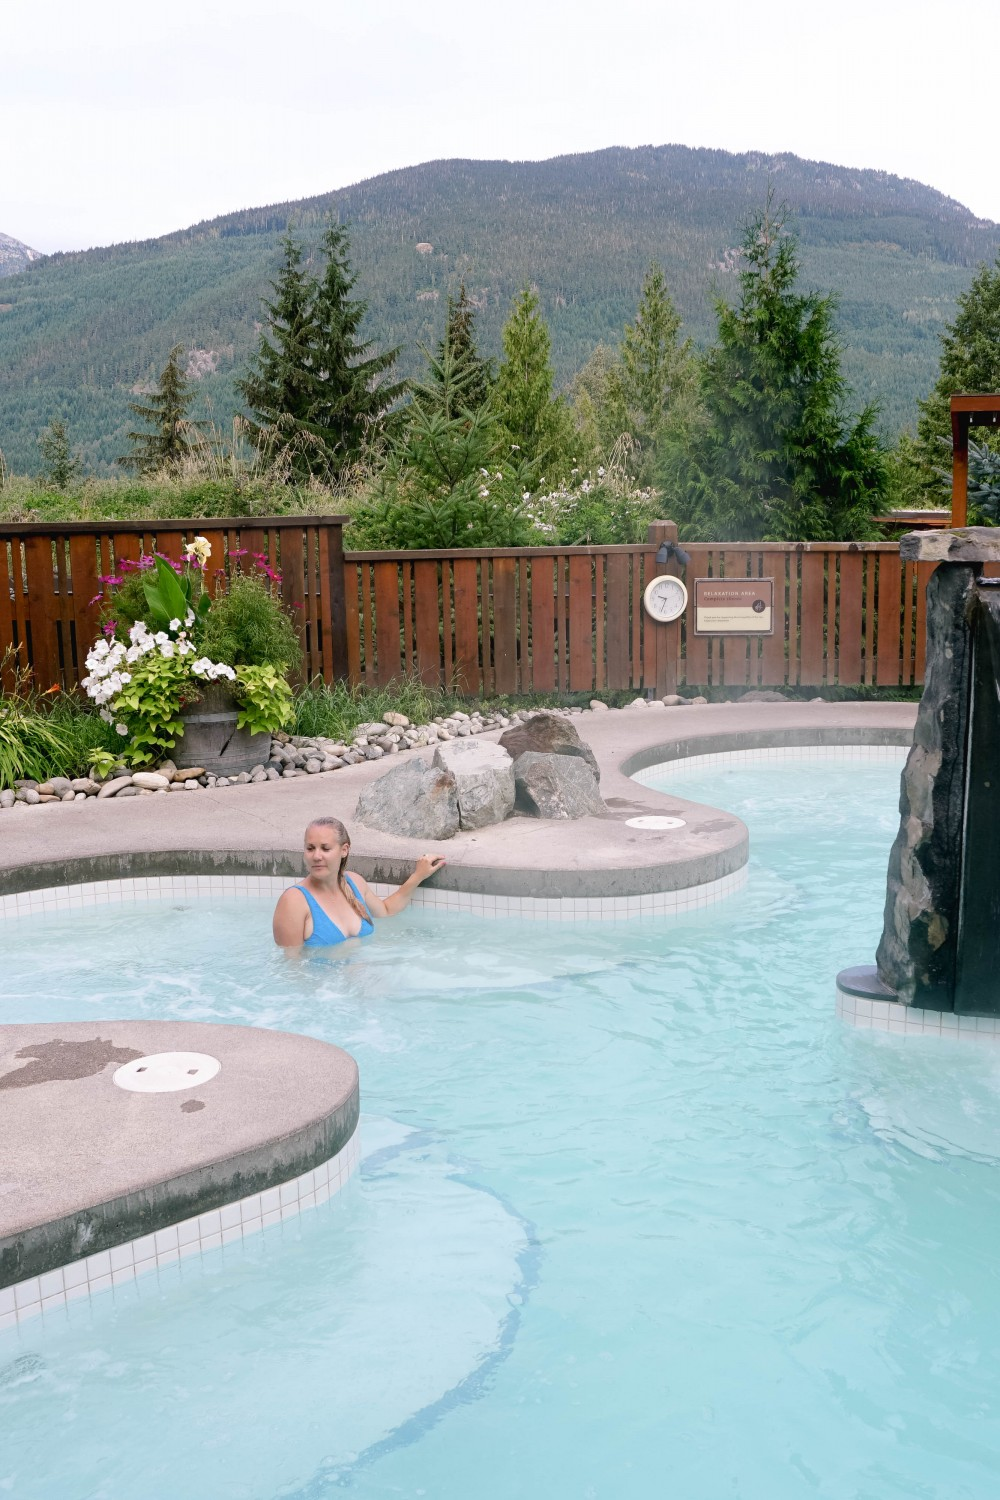 Scandinave Spa-Best Spa in Whistler-Visiting Whistler-Whistler Vacation-Summer in Whistler-Have Need Want-Scandinavian Baths 13